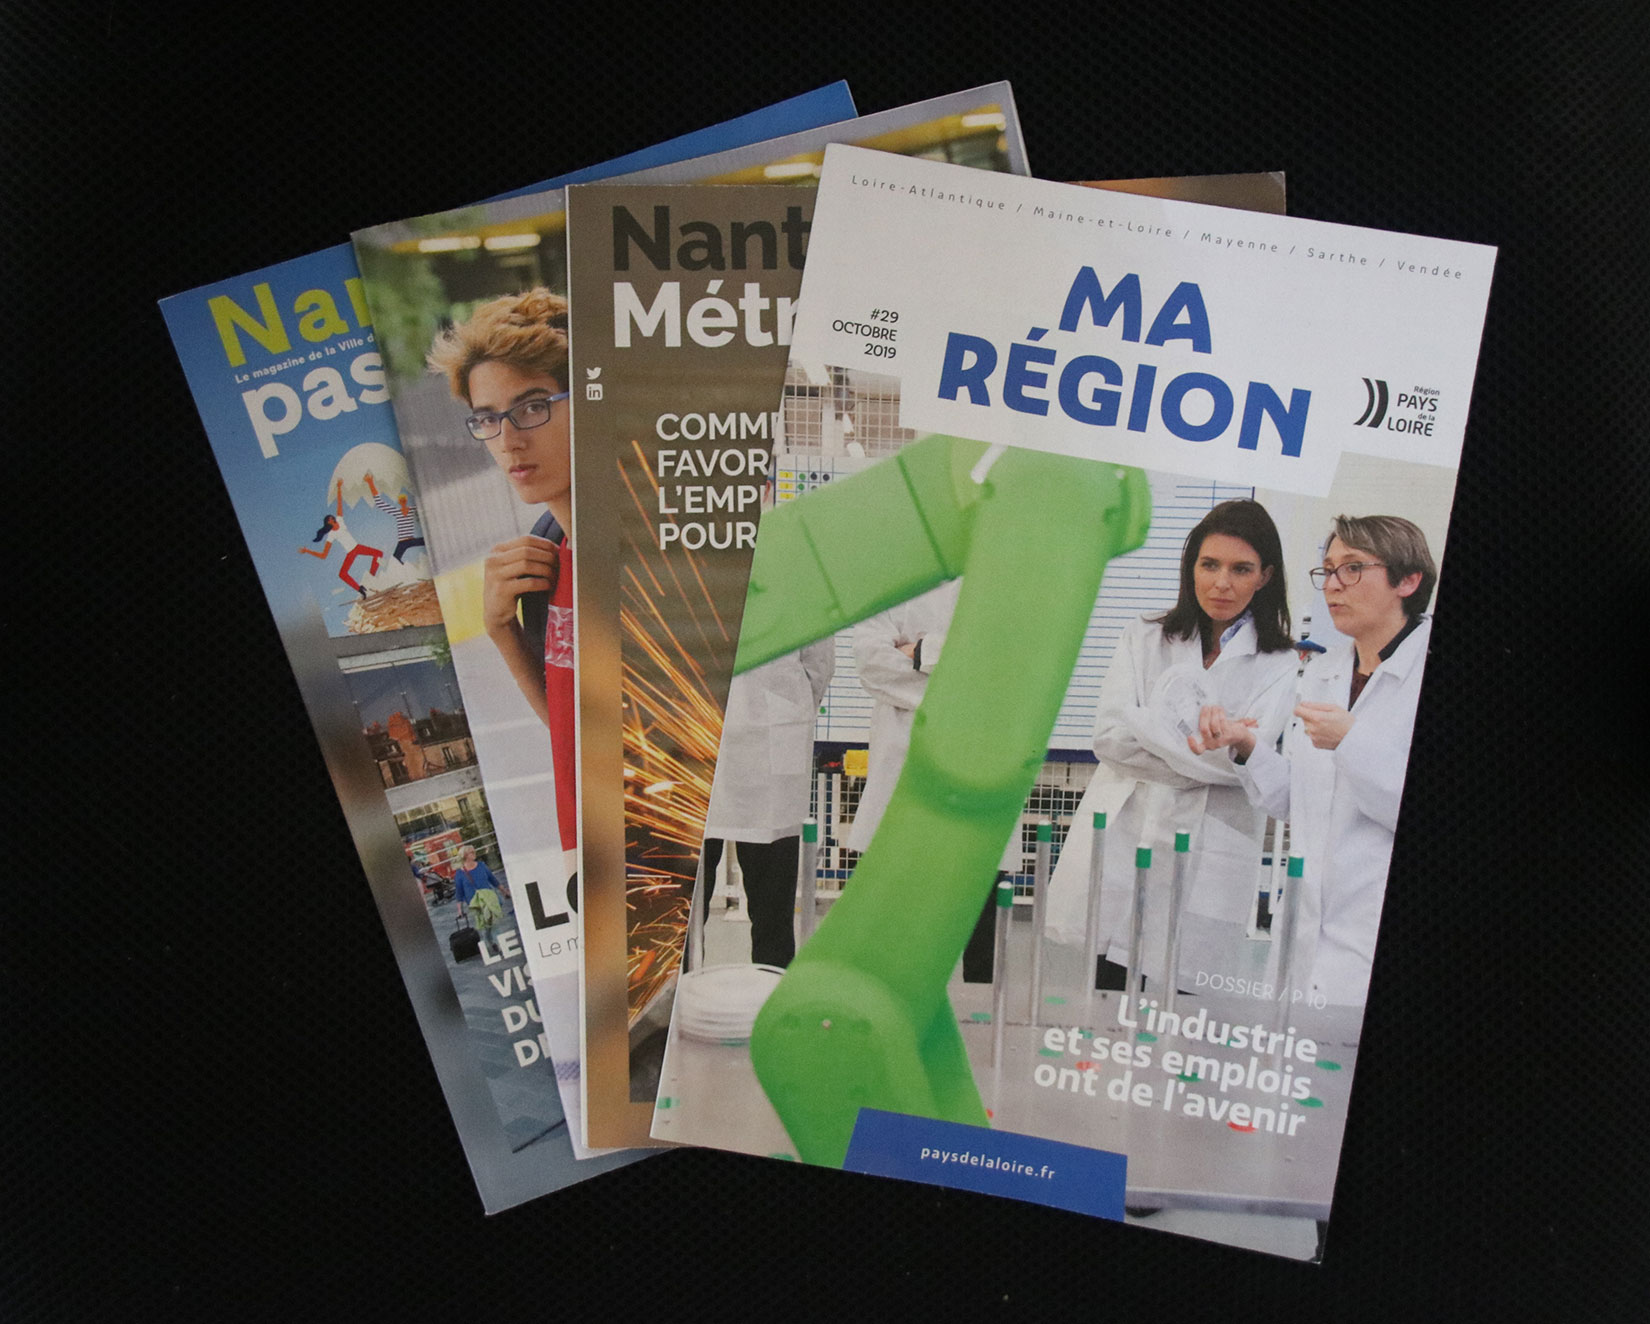 Dear Nantes, please stop spamming me with these magazines